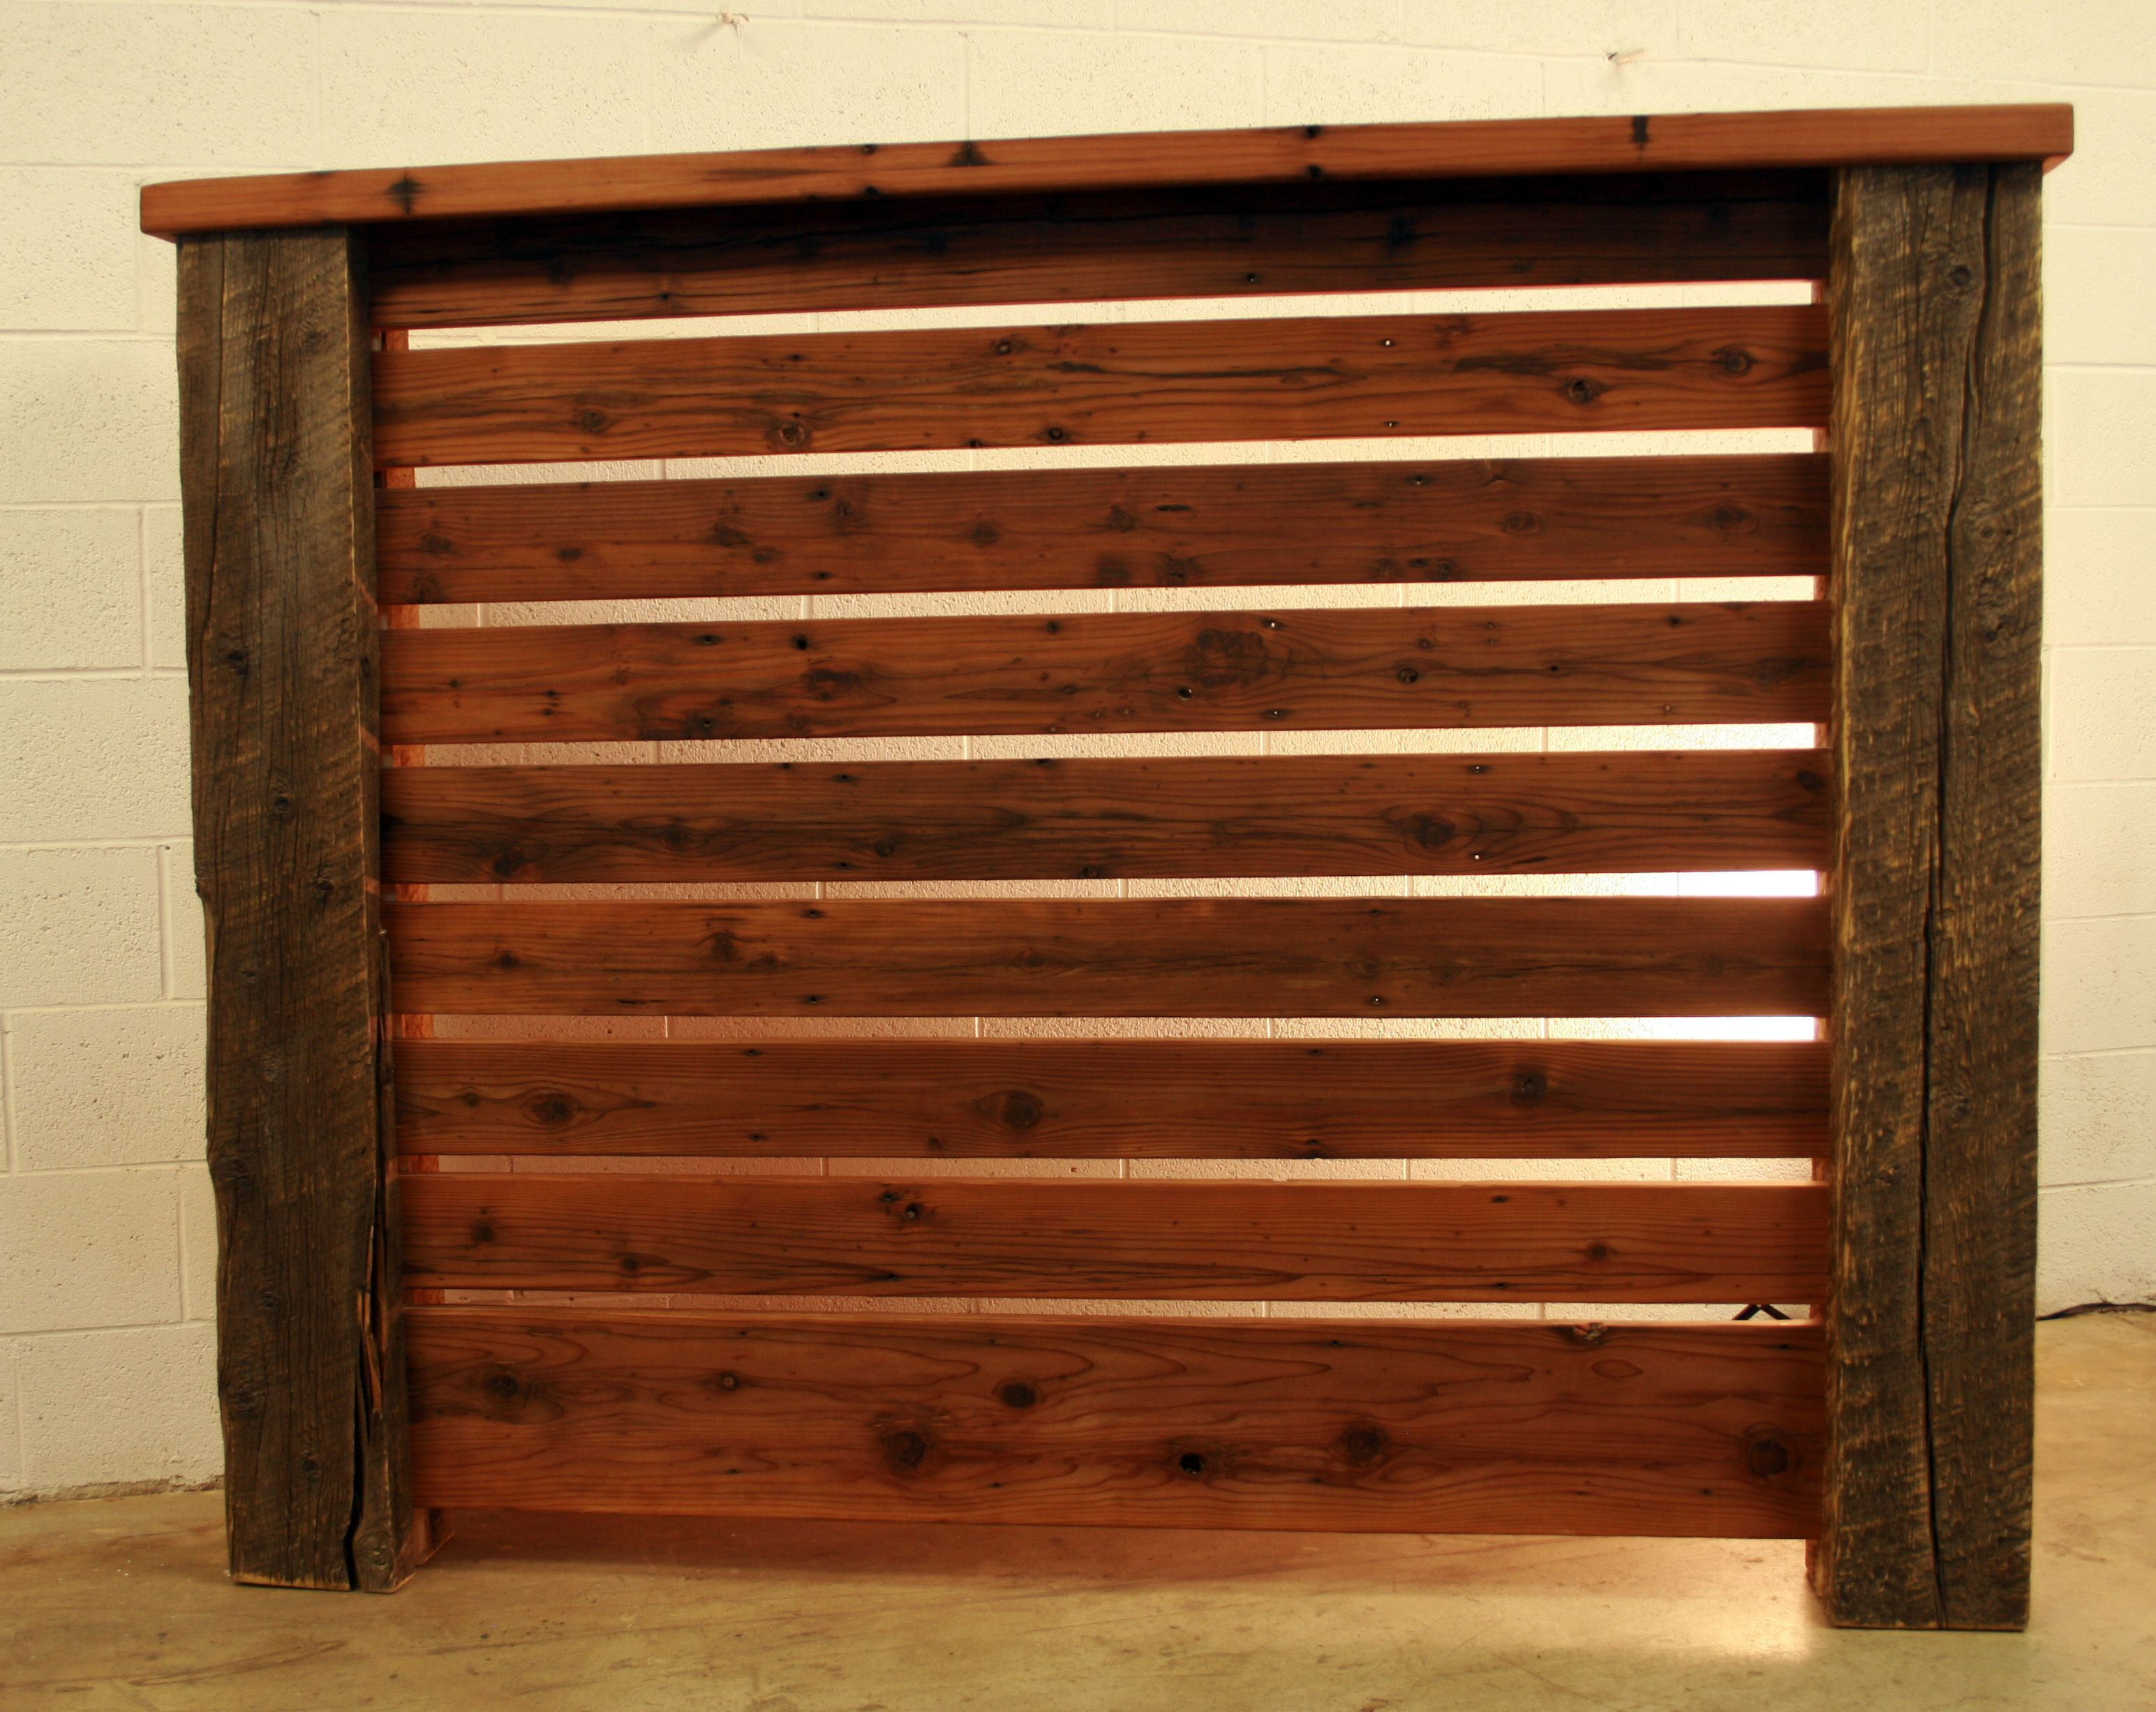 Buy hand crafted queen headboard crafted from reclaimed for Buy reclaimed barn wood